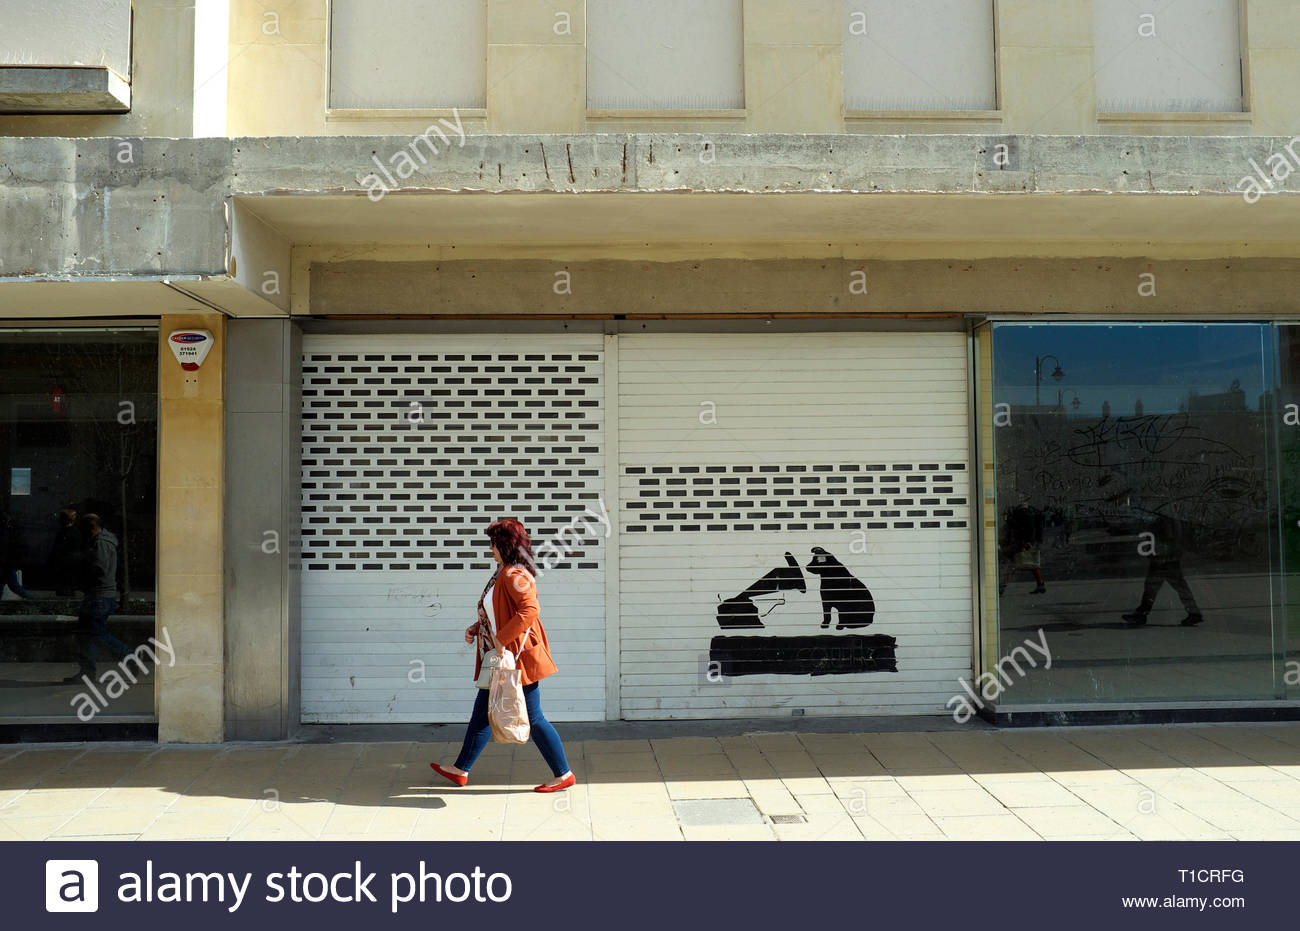 Former retail store of HMV, music retailer. High Street, Cheltenham, Gloucestershire, UK. Stock Photo